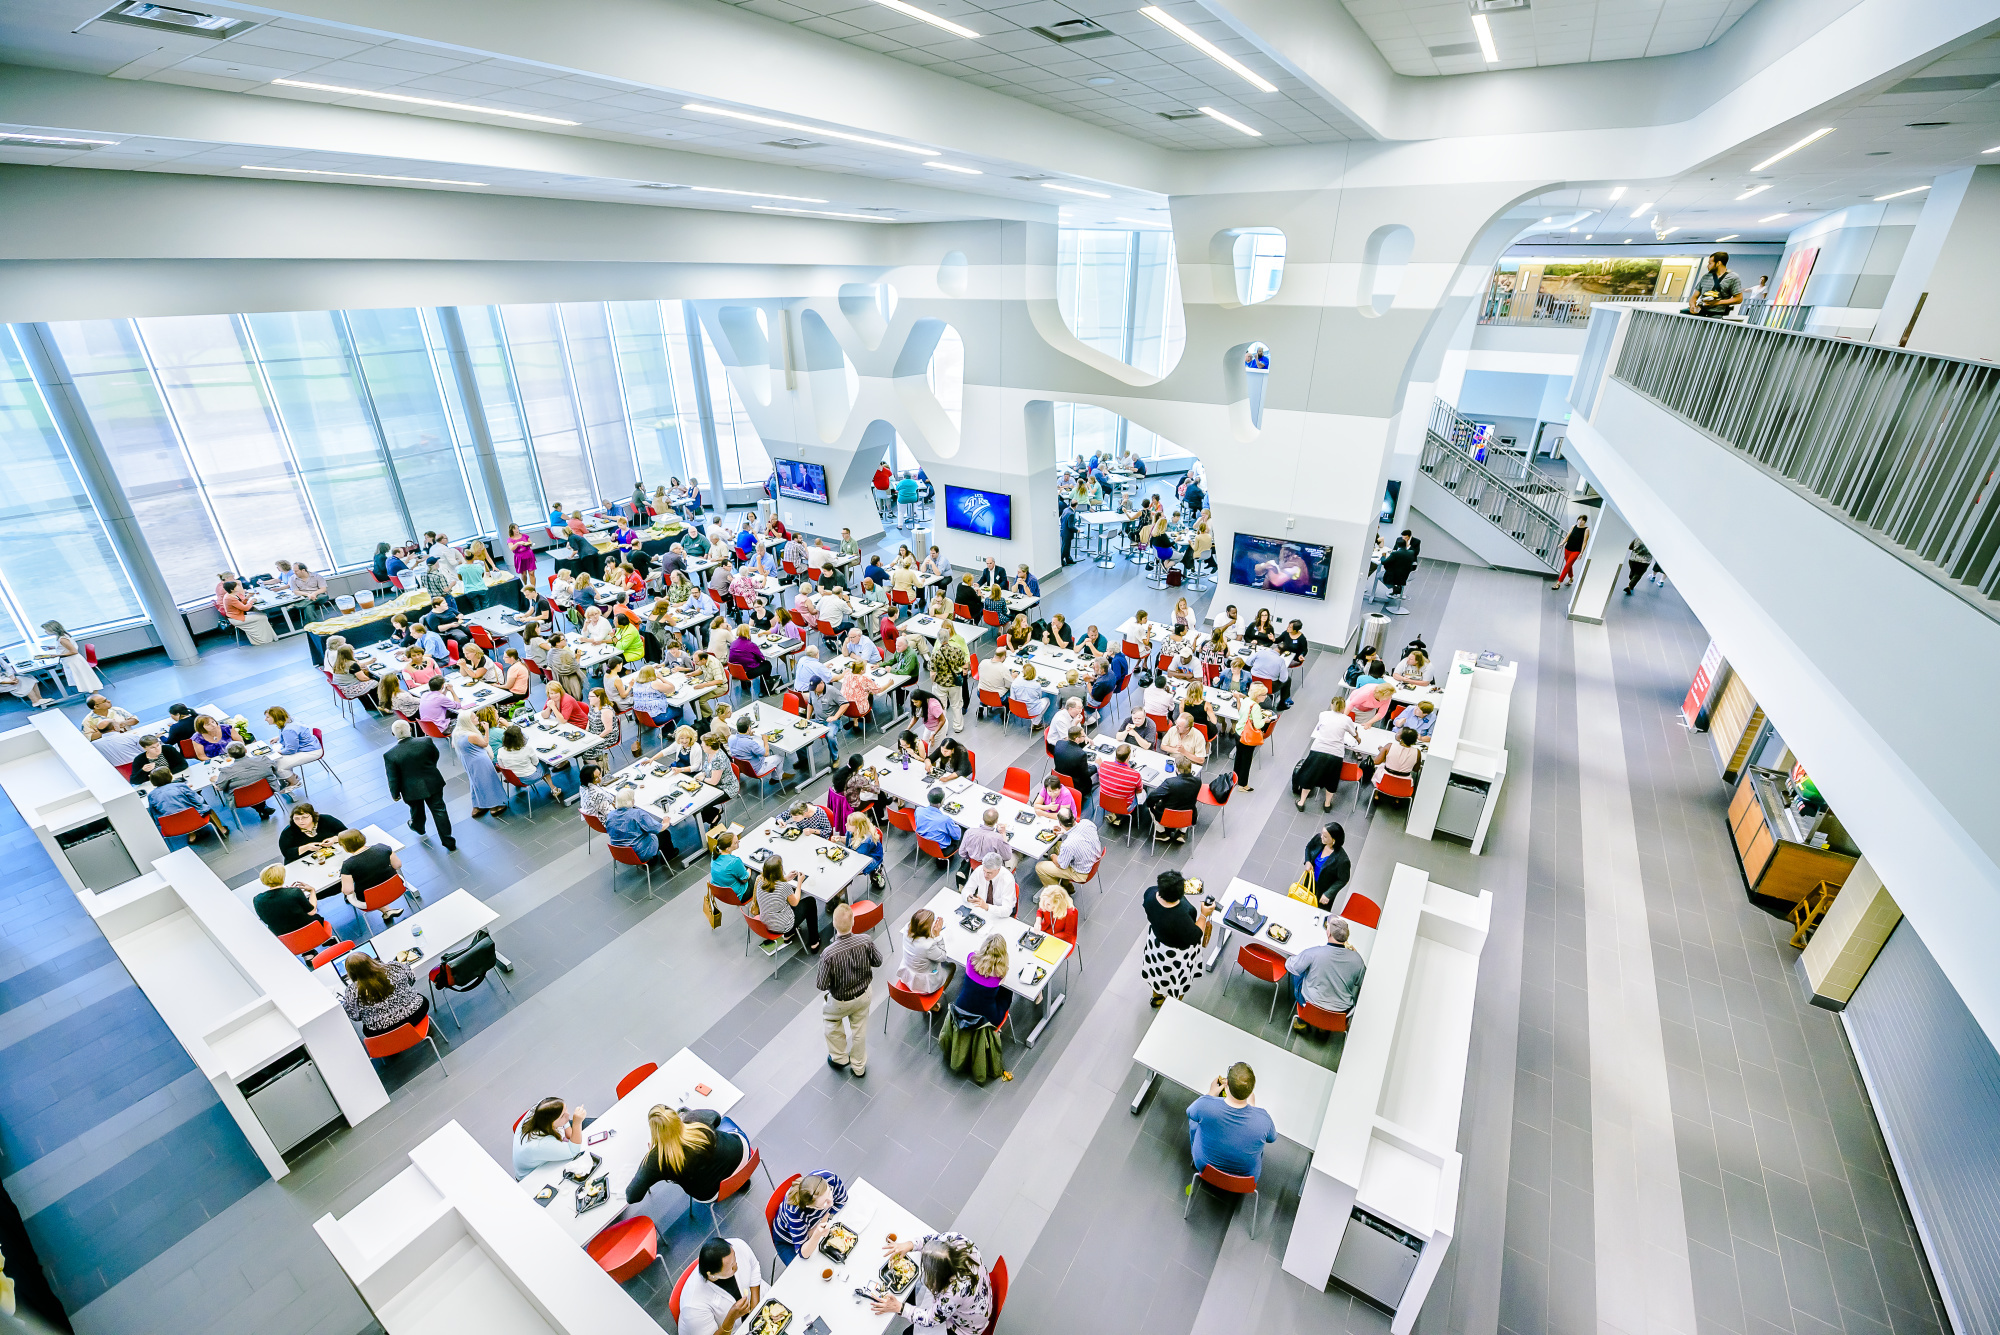 Overhead view of the Gannon Commons during lunch